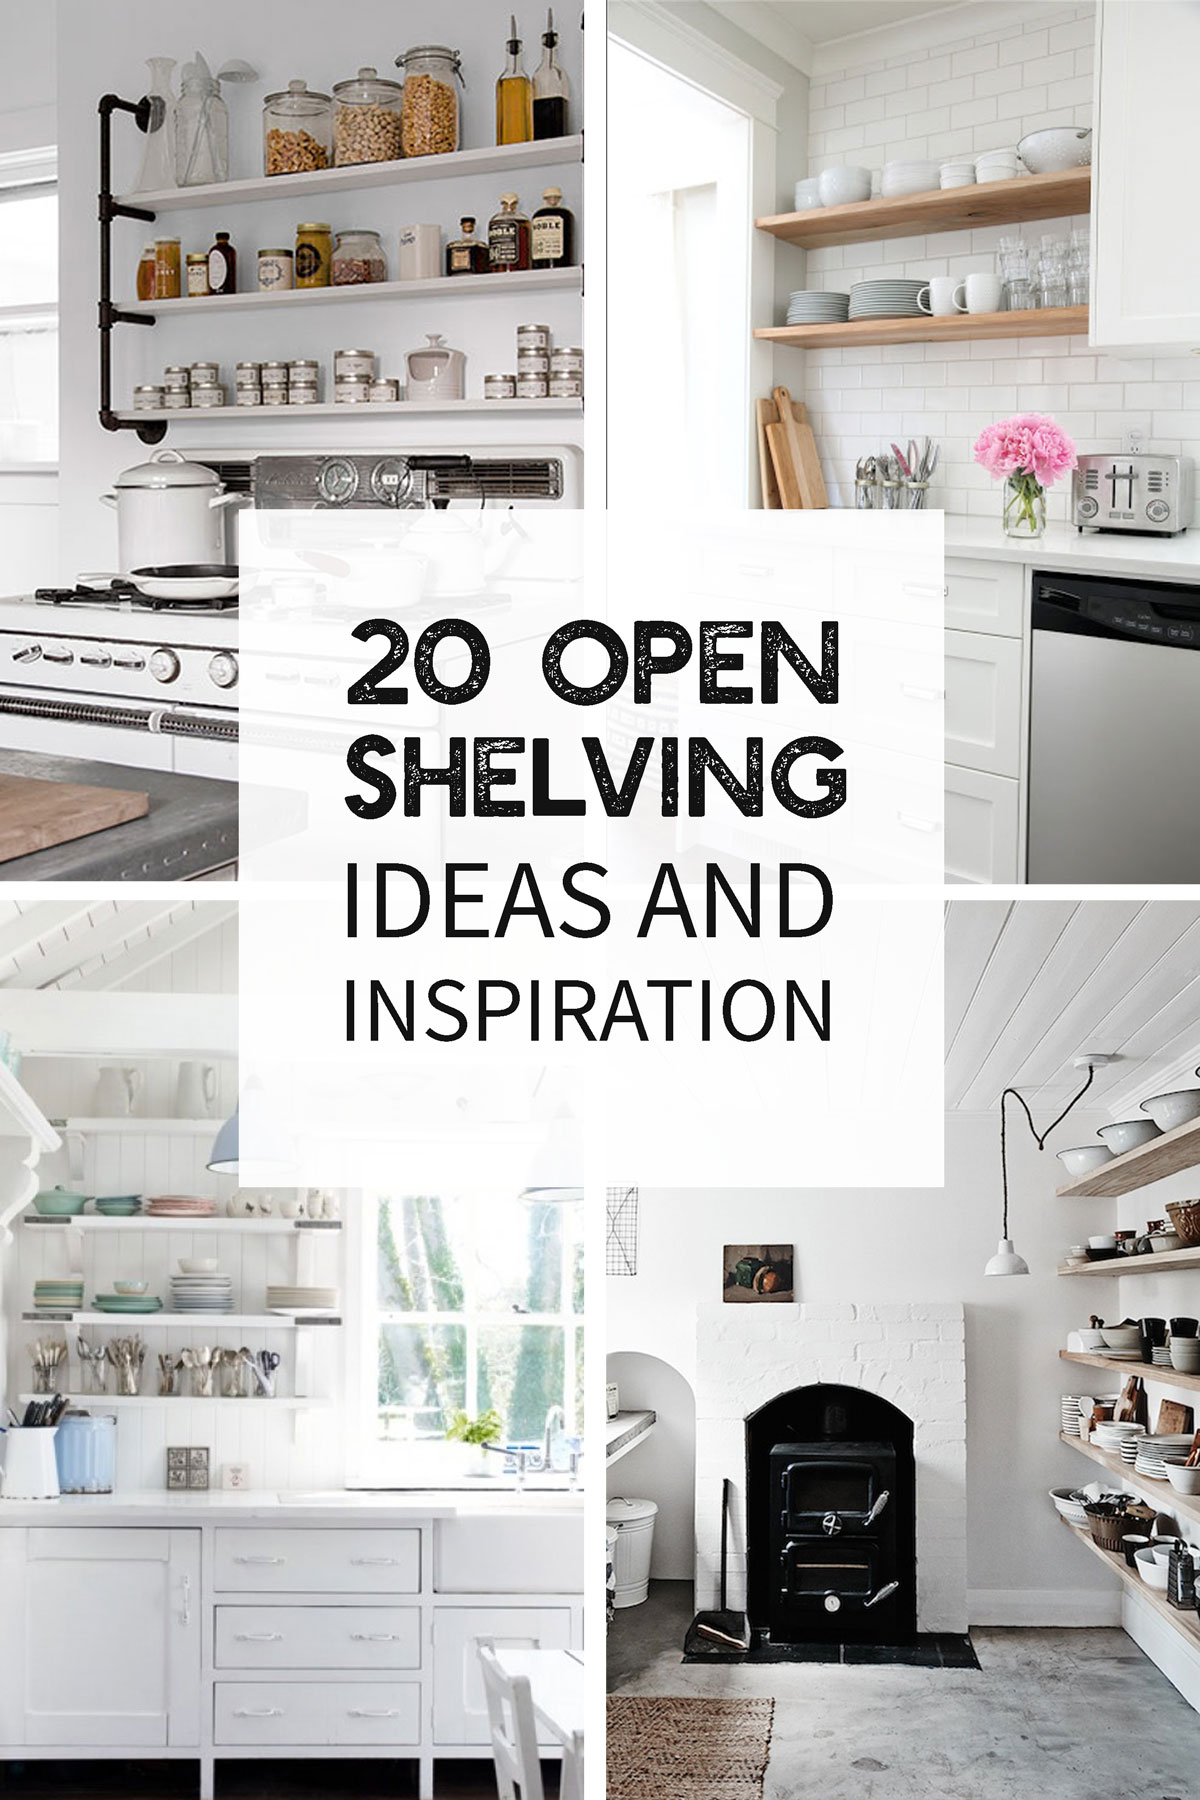 High Quality 20 Open Shelving Ideas And Inspiration